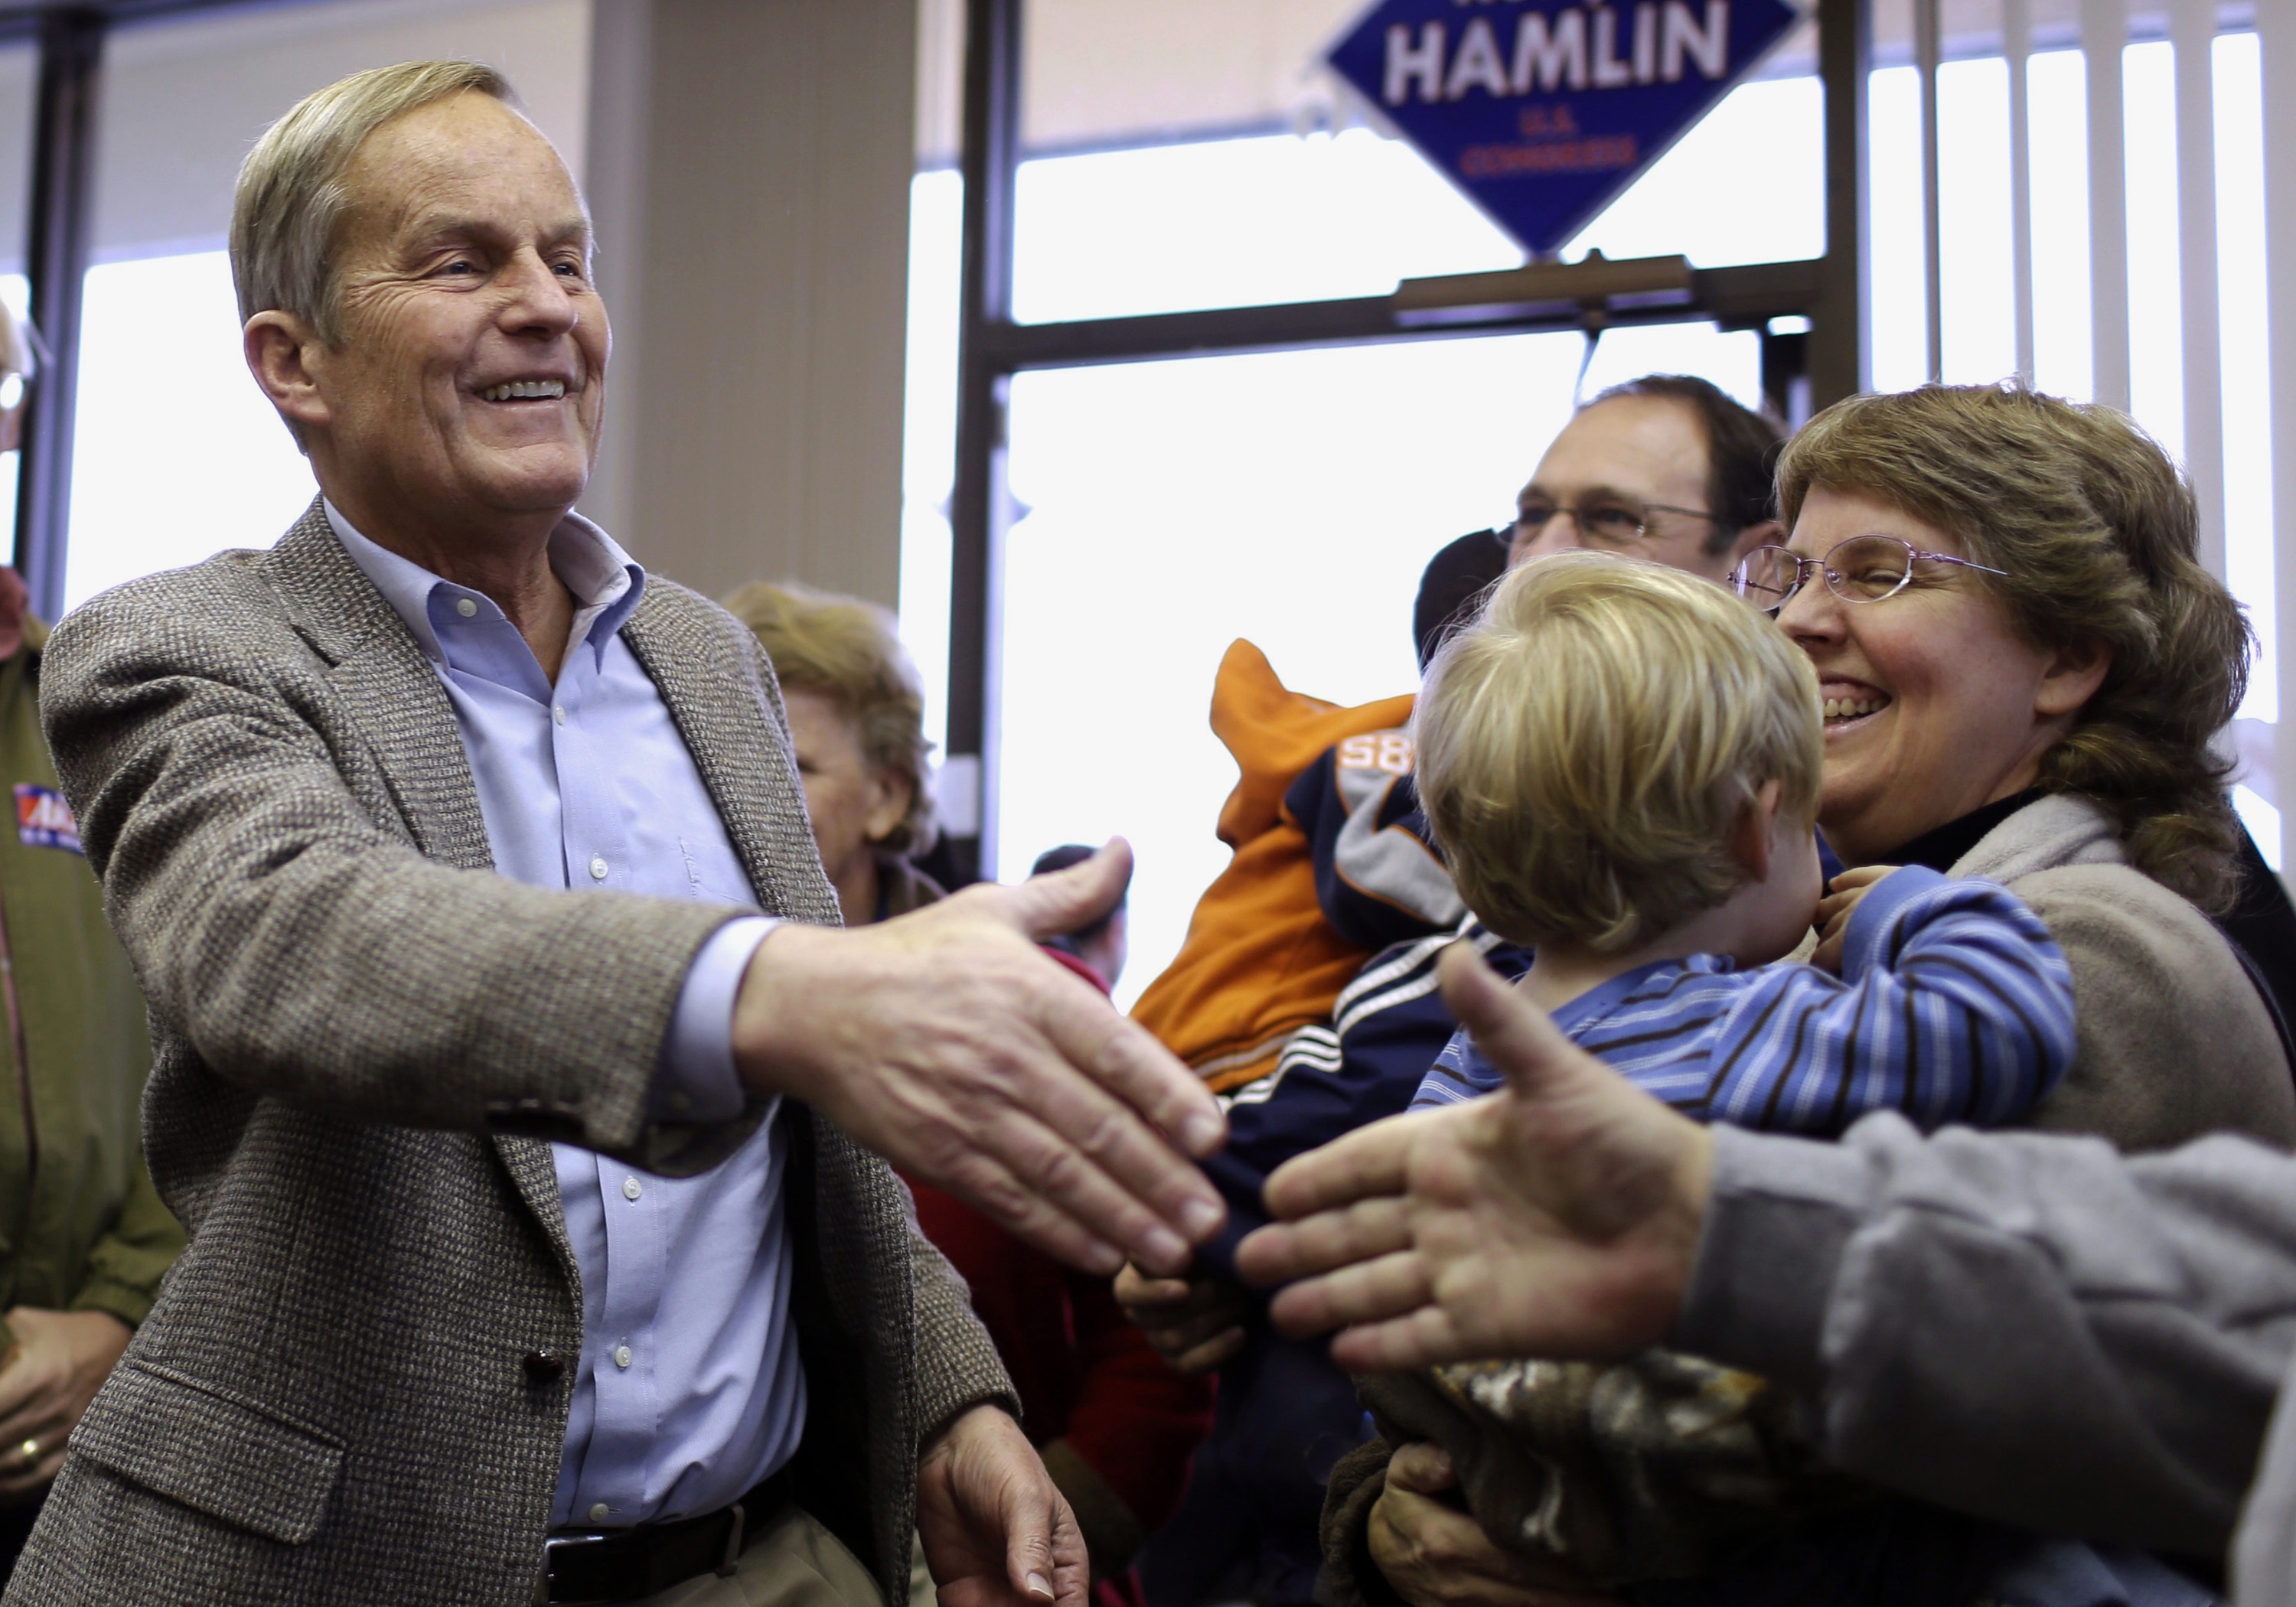 """In this Nov. 5, 2012, file photo, Todd Akin, then a Missouri Republican Senate candidate, campaigns in Florissant, Mo. Akin, whose """"legitimate rape"""" comments during the 2012 U.S. Senate campaign were roundly criticized has died. He was 74."""